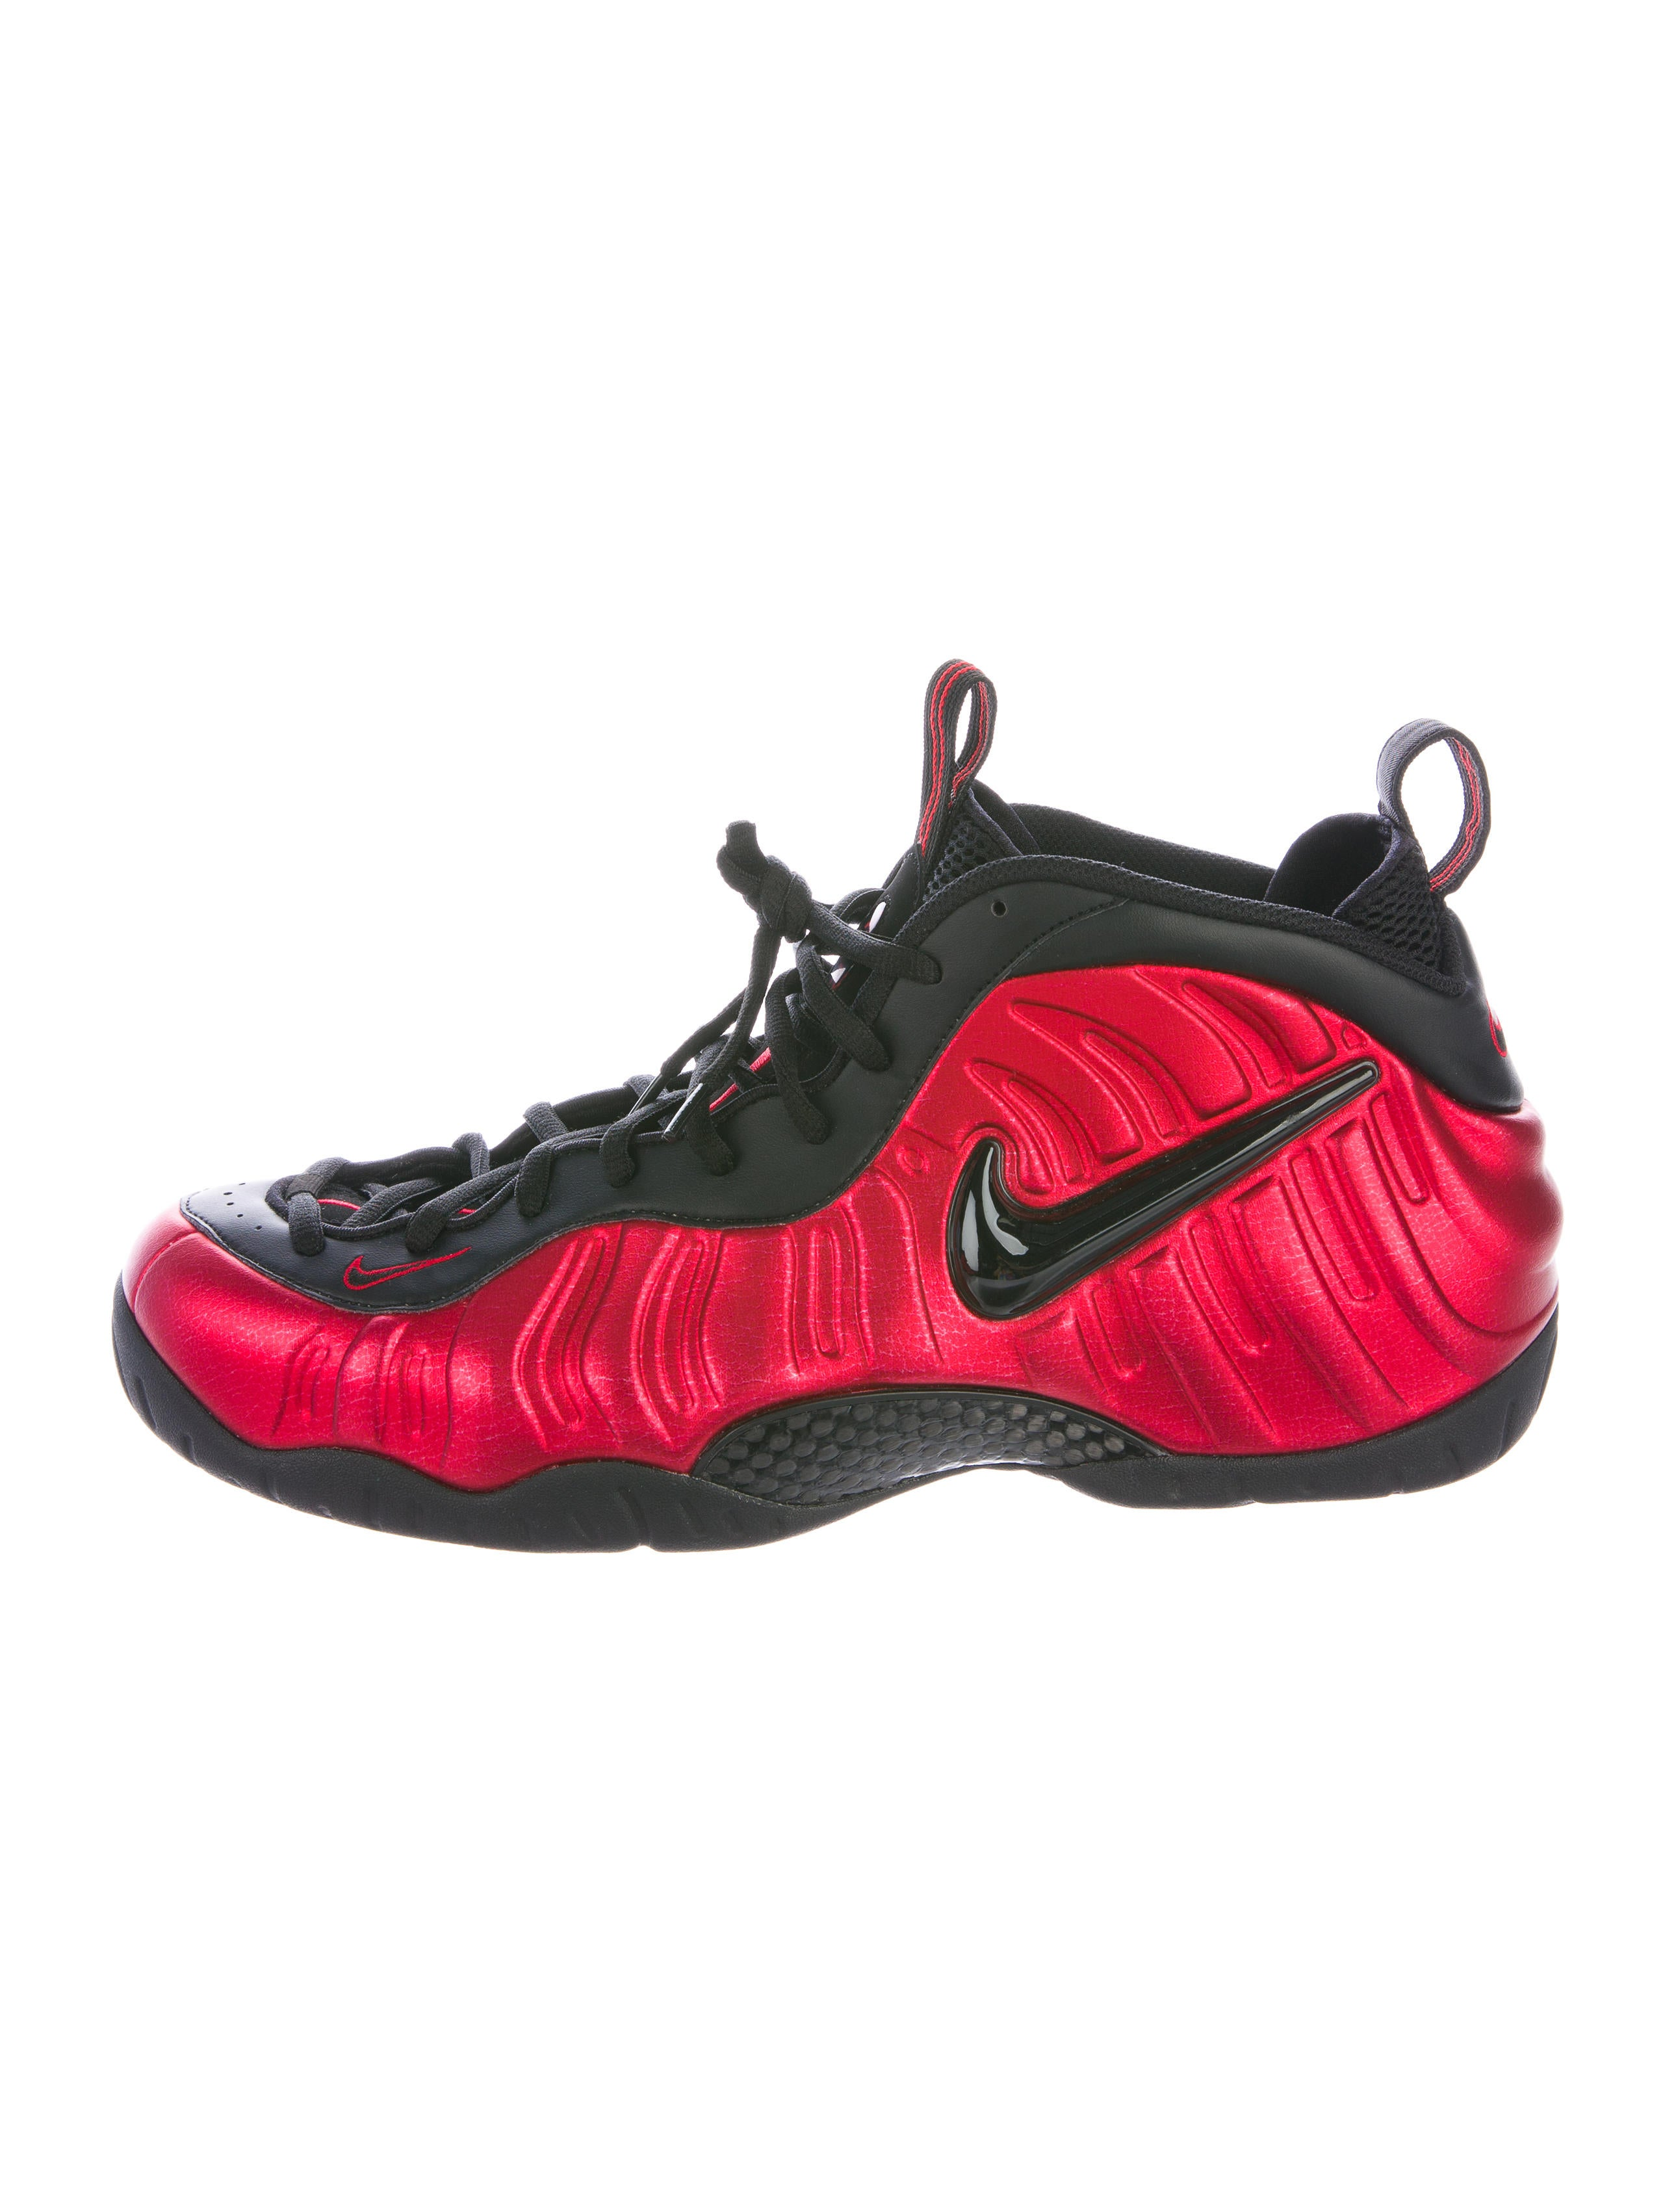 Nike Foamposite Australia Shoes  f6928de74